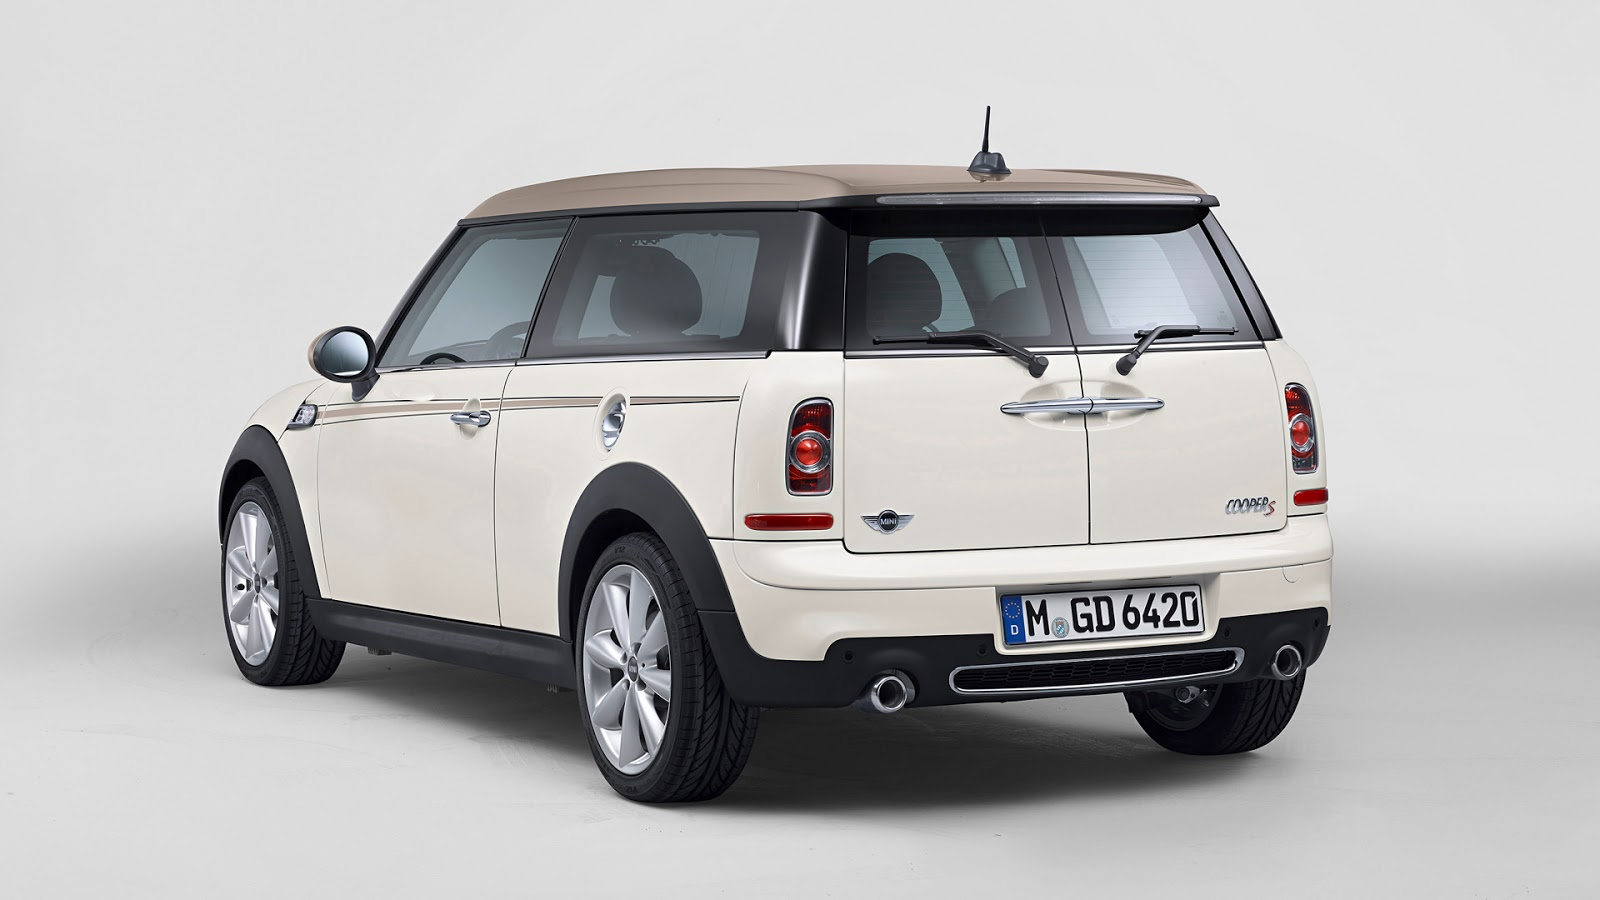 car wallpapers in good images 2013 mini clubman hyde park 1 6 turbo 181 hp. Black Bedroom Furniture Sets. Home Design Ideas